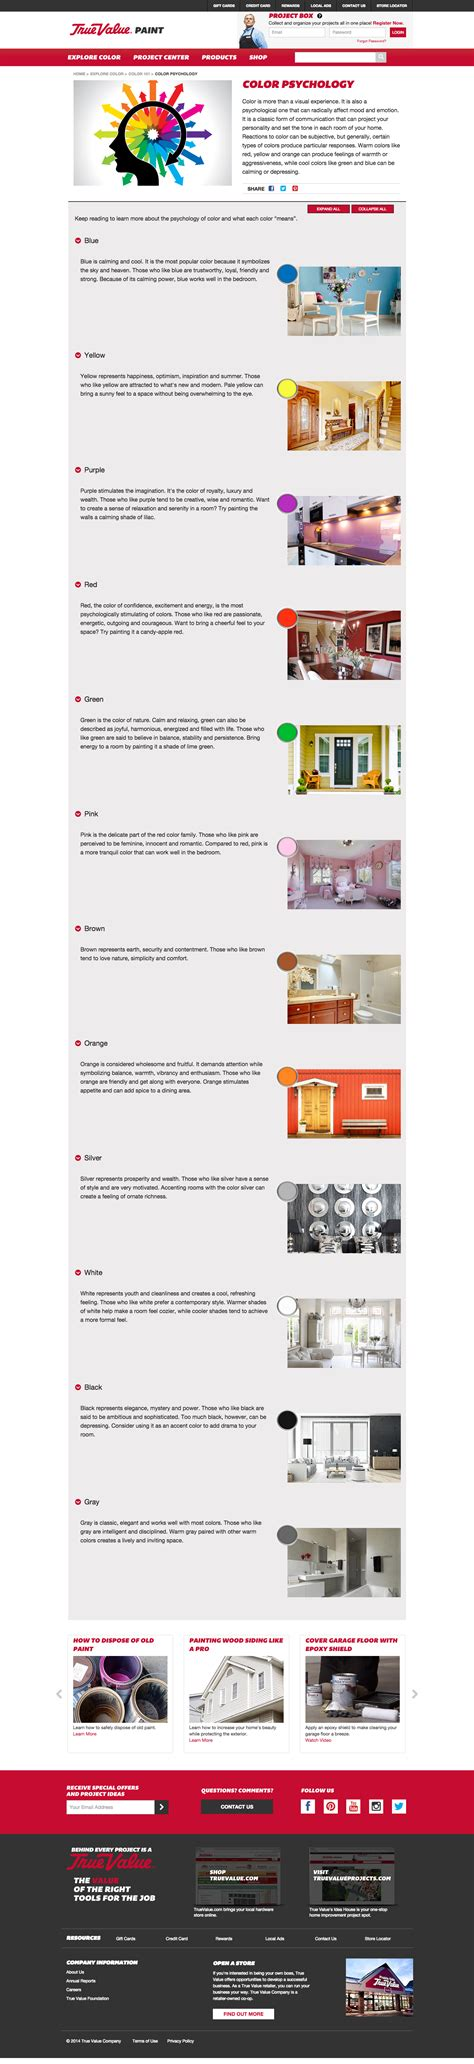 true value paint colors chad 187 archive 187 true value projects and paint